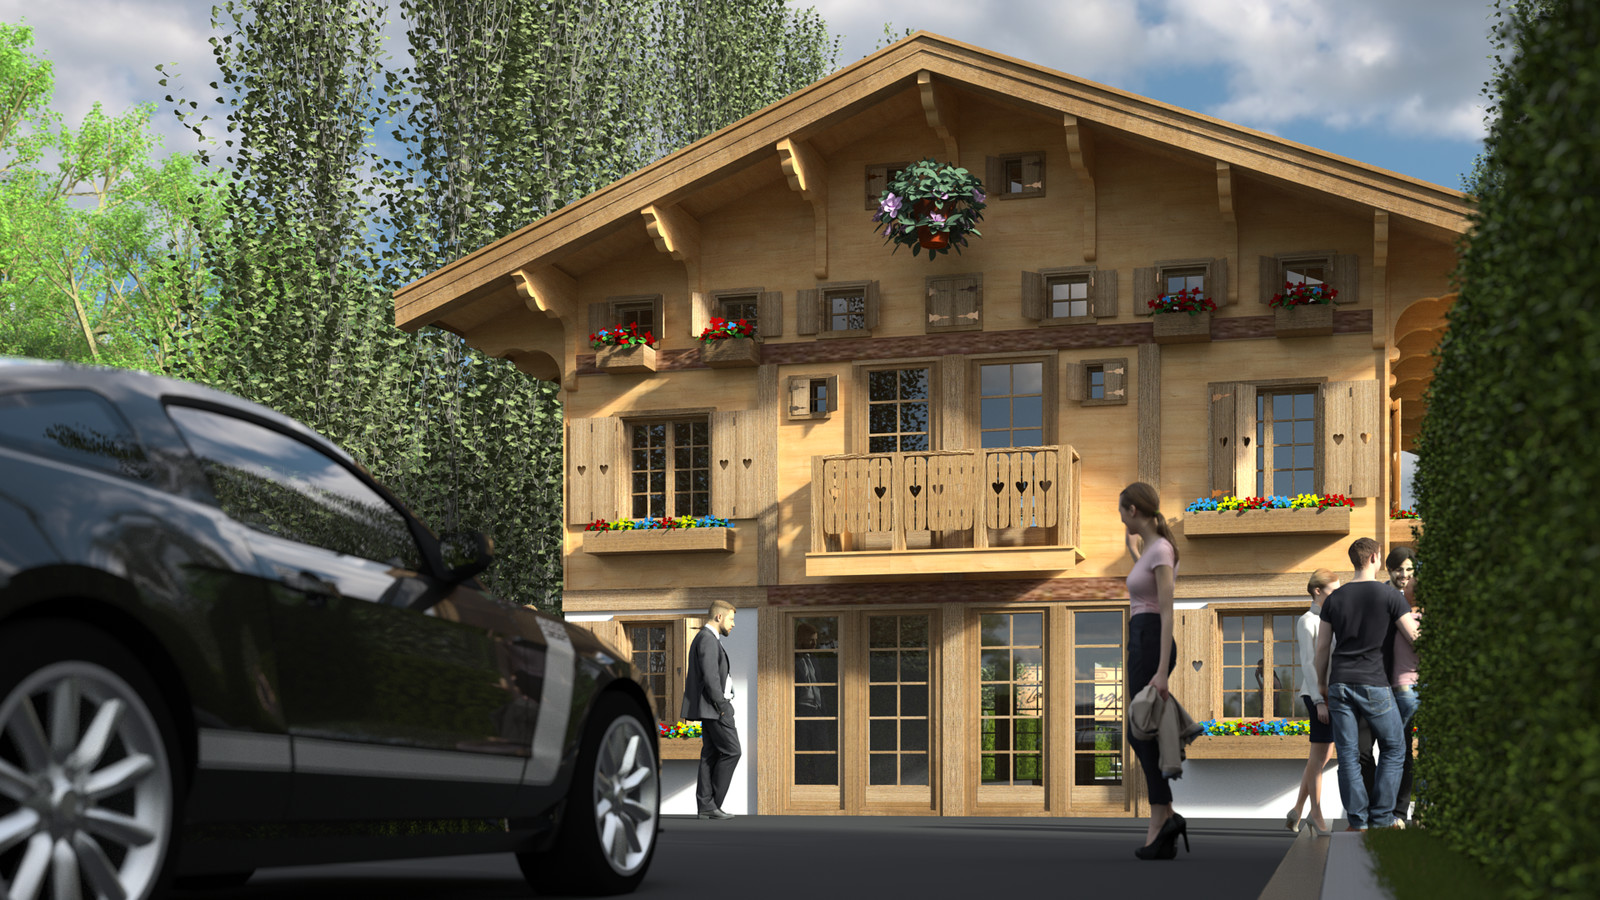 SketchUp 2018 + Thea Render  La Grange work-Scene 60 2pt Maxi sized Traditional Swiss Chalet Event Build  HDR by HDRI-SKIES found here: http://hdri-skies.com/shop/hdri-sky-208/